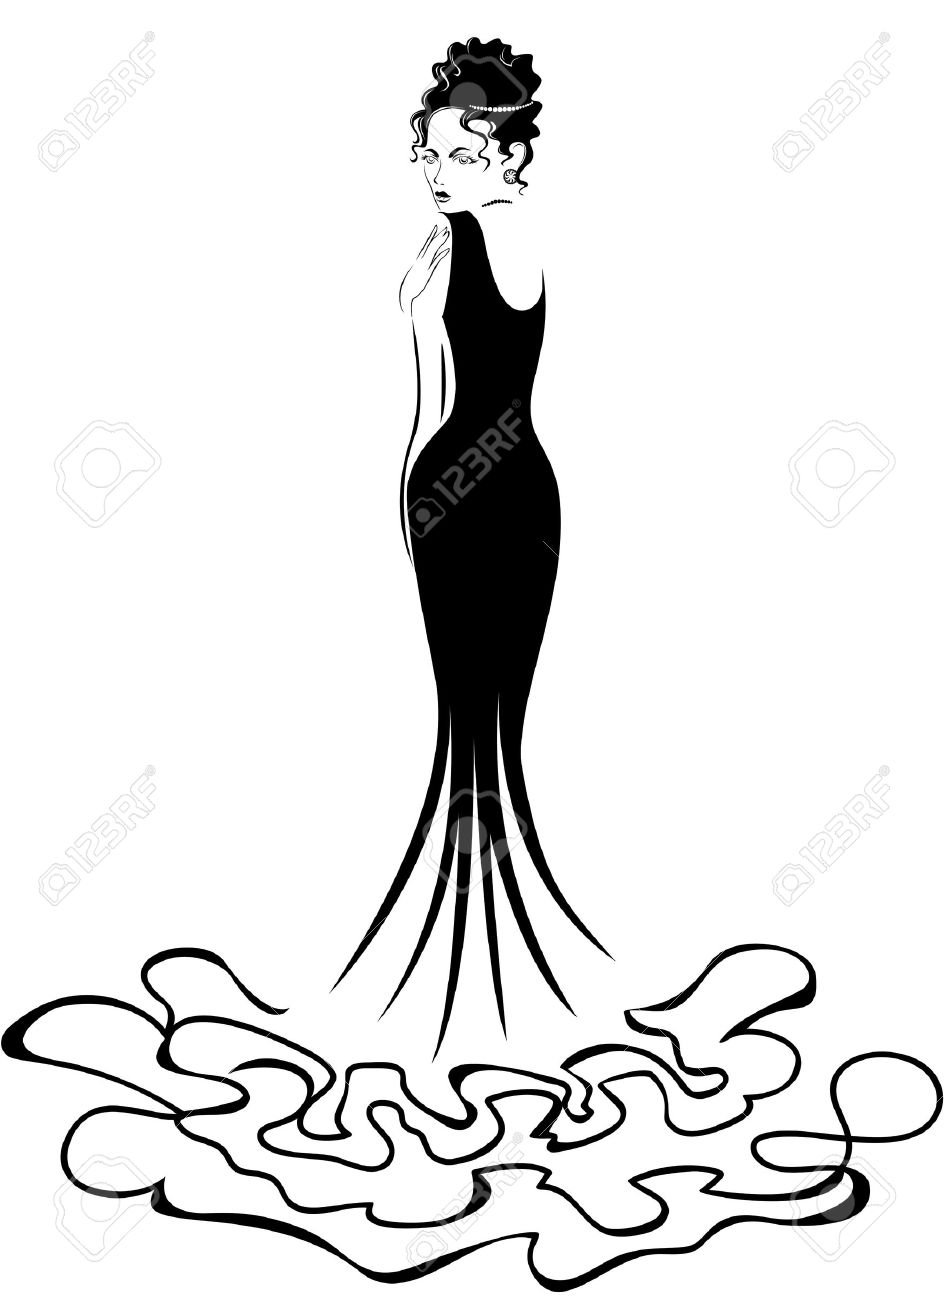 944x1300 Beautiful Elegant Woman In A Long Black Dress Royalty Free